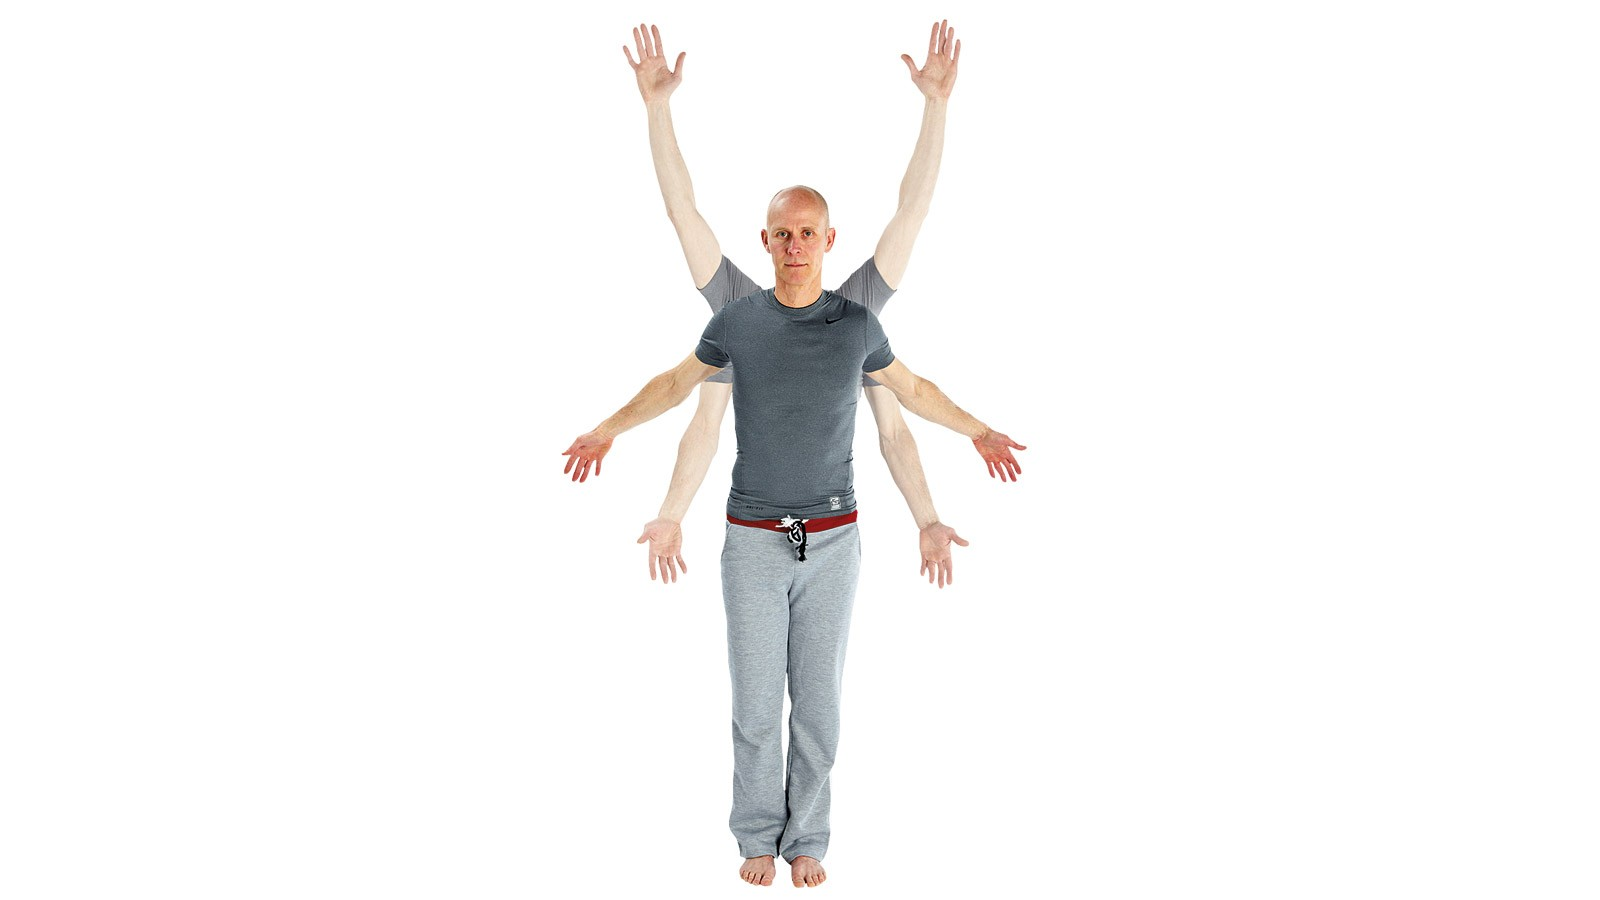 Rotate the arms in both directions